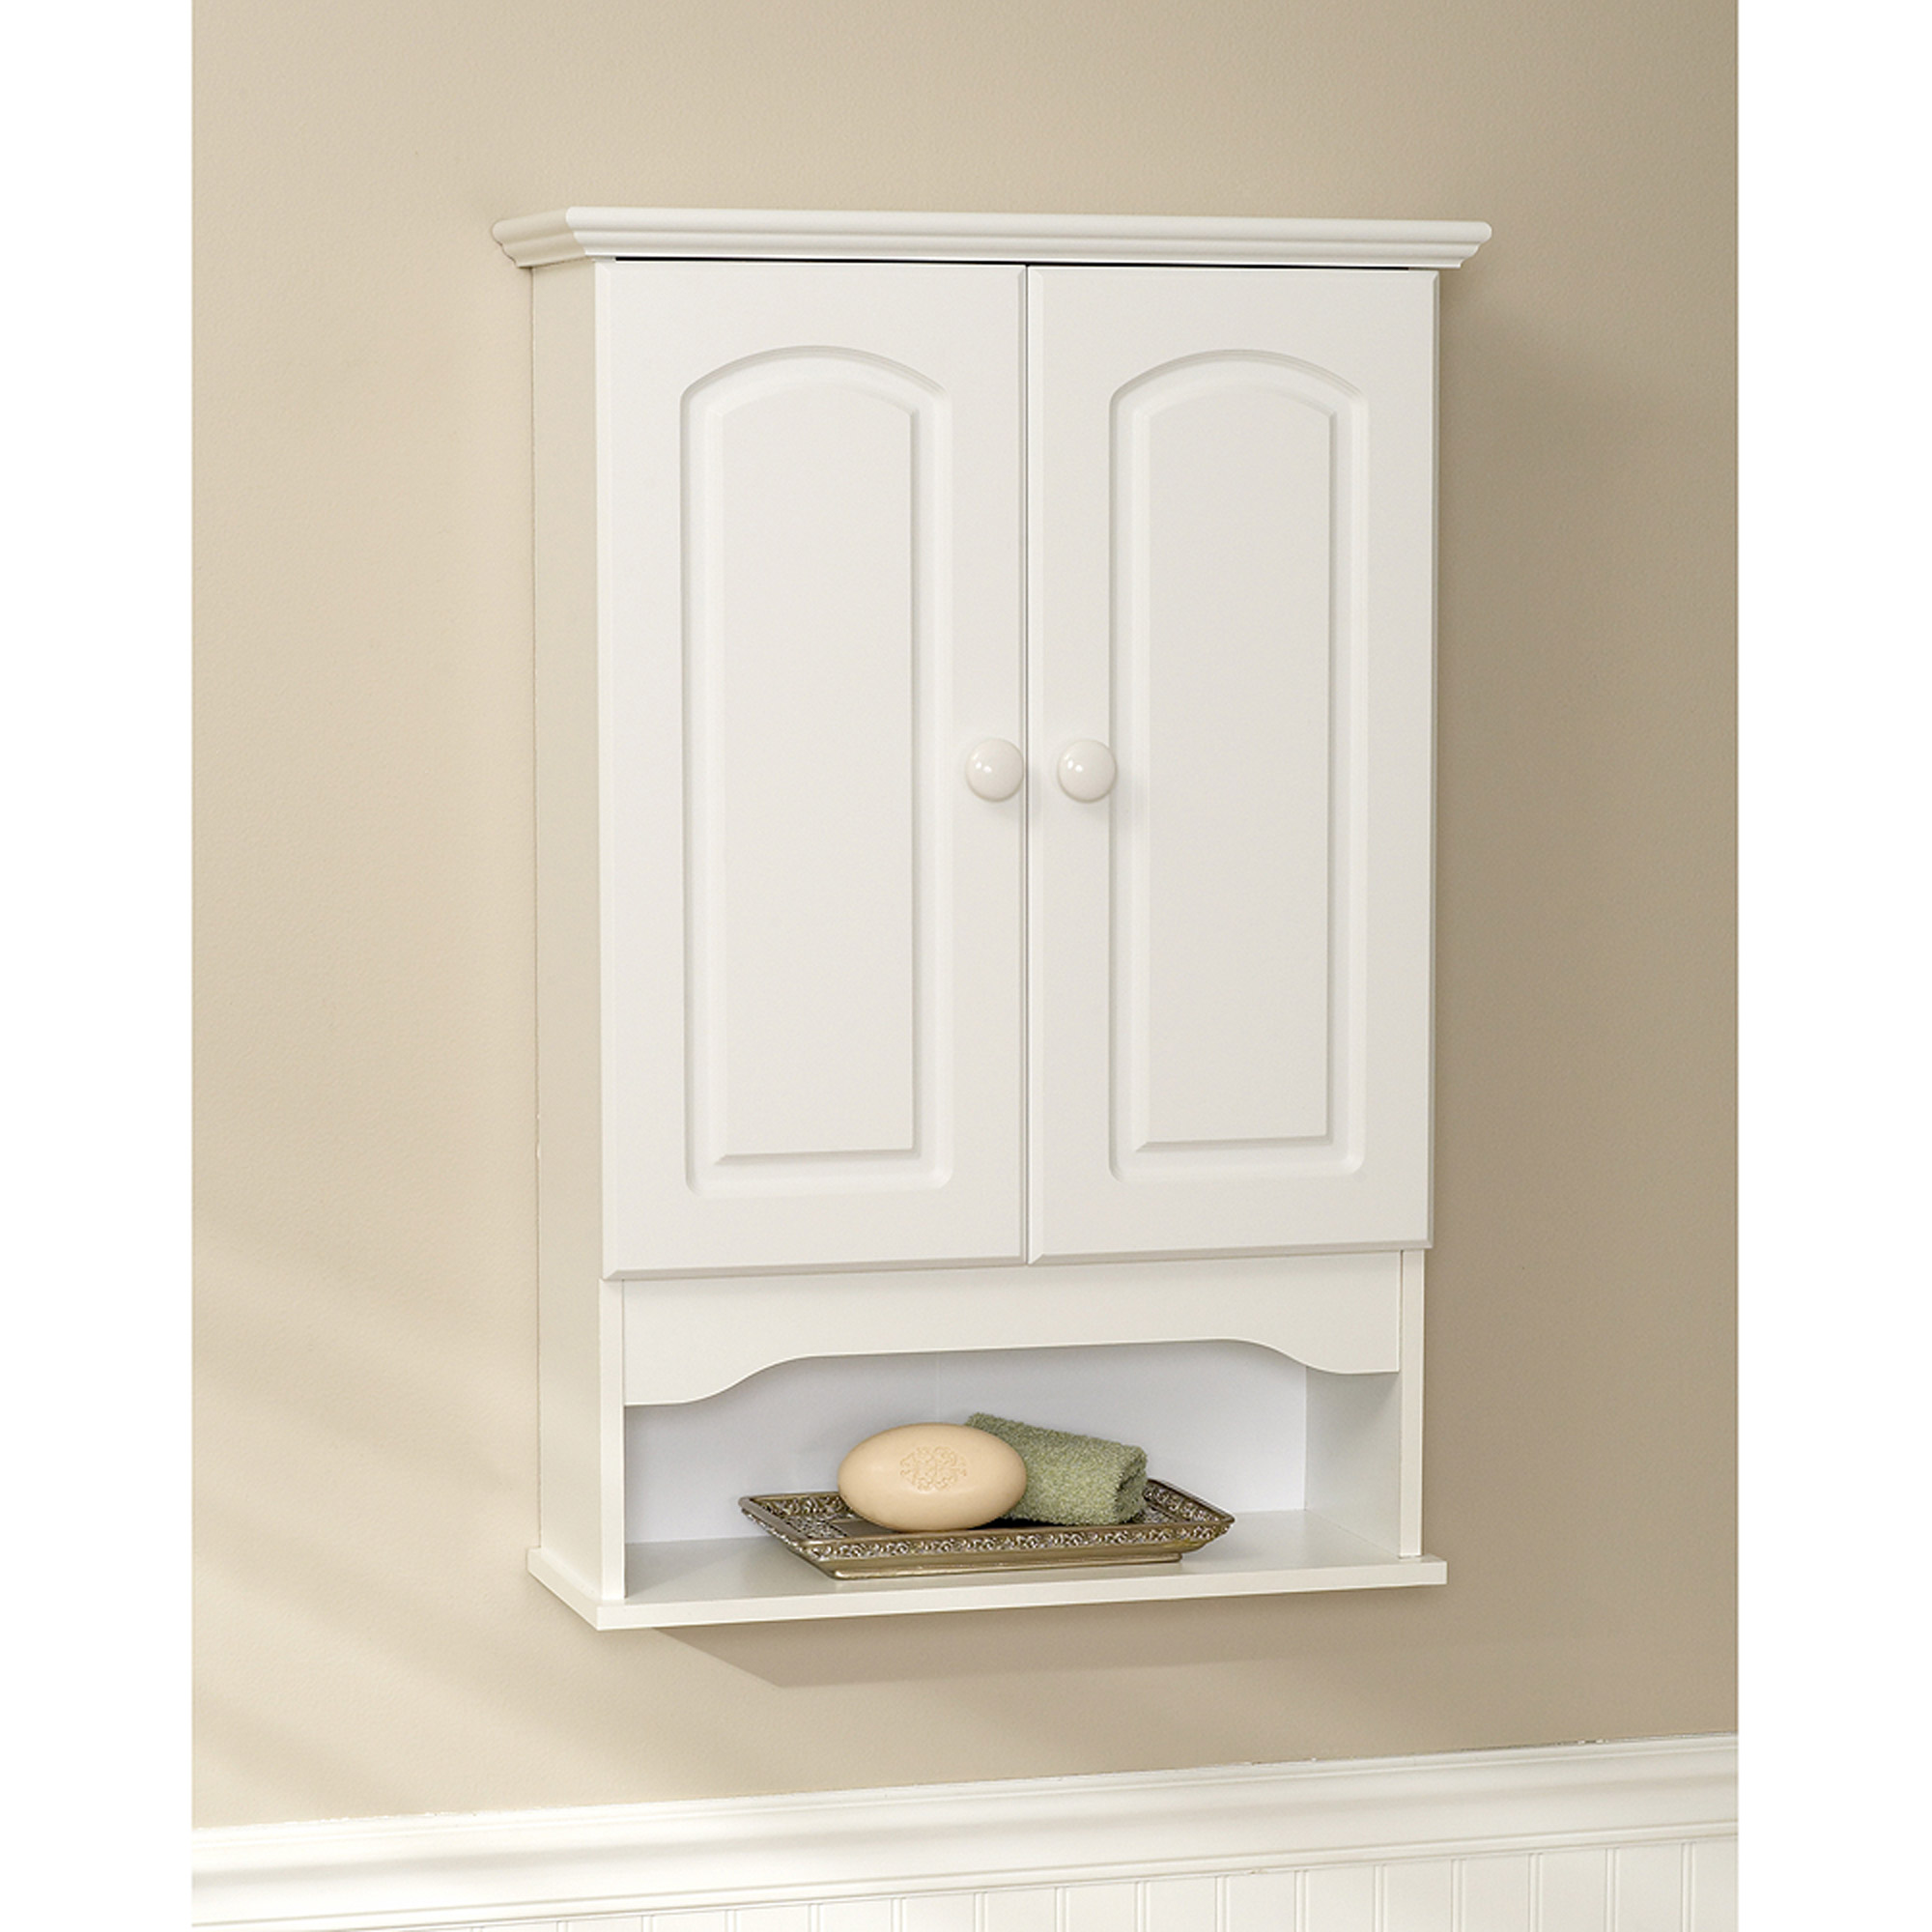 bathroom furniture walmart. Bathroom Cabinets Walmart Canada  bathroom wall cabinets walmart